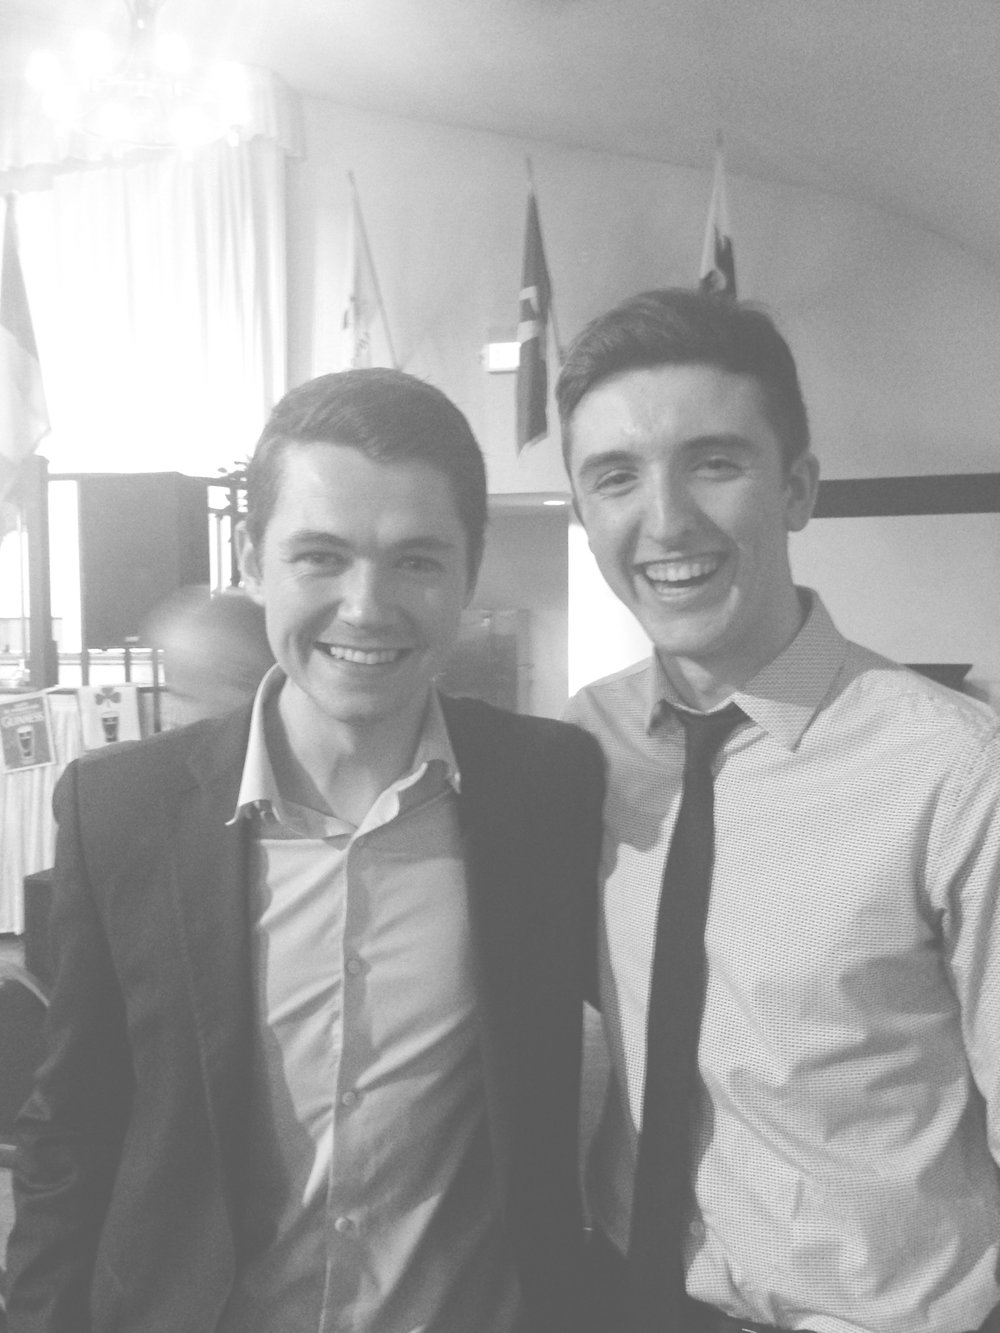 Ryan with Damian McGinty!